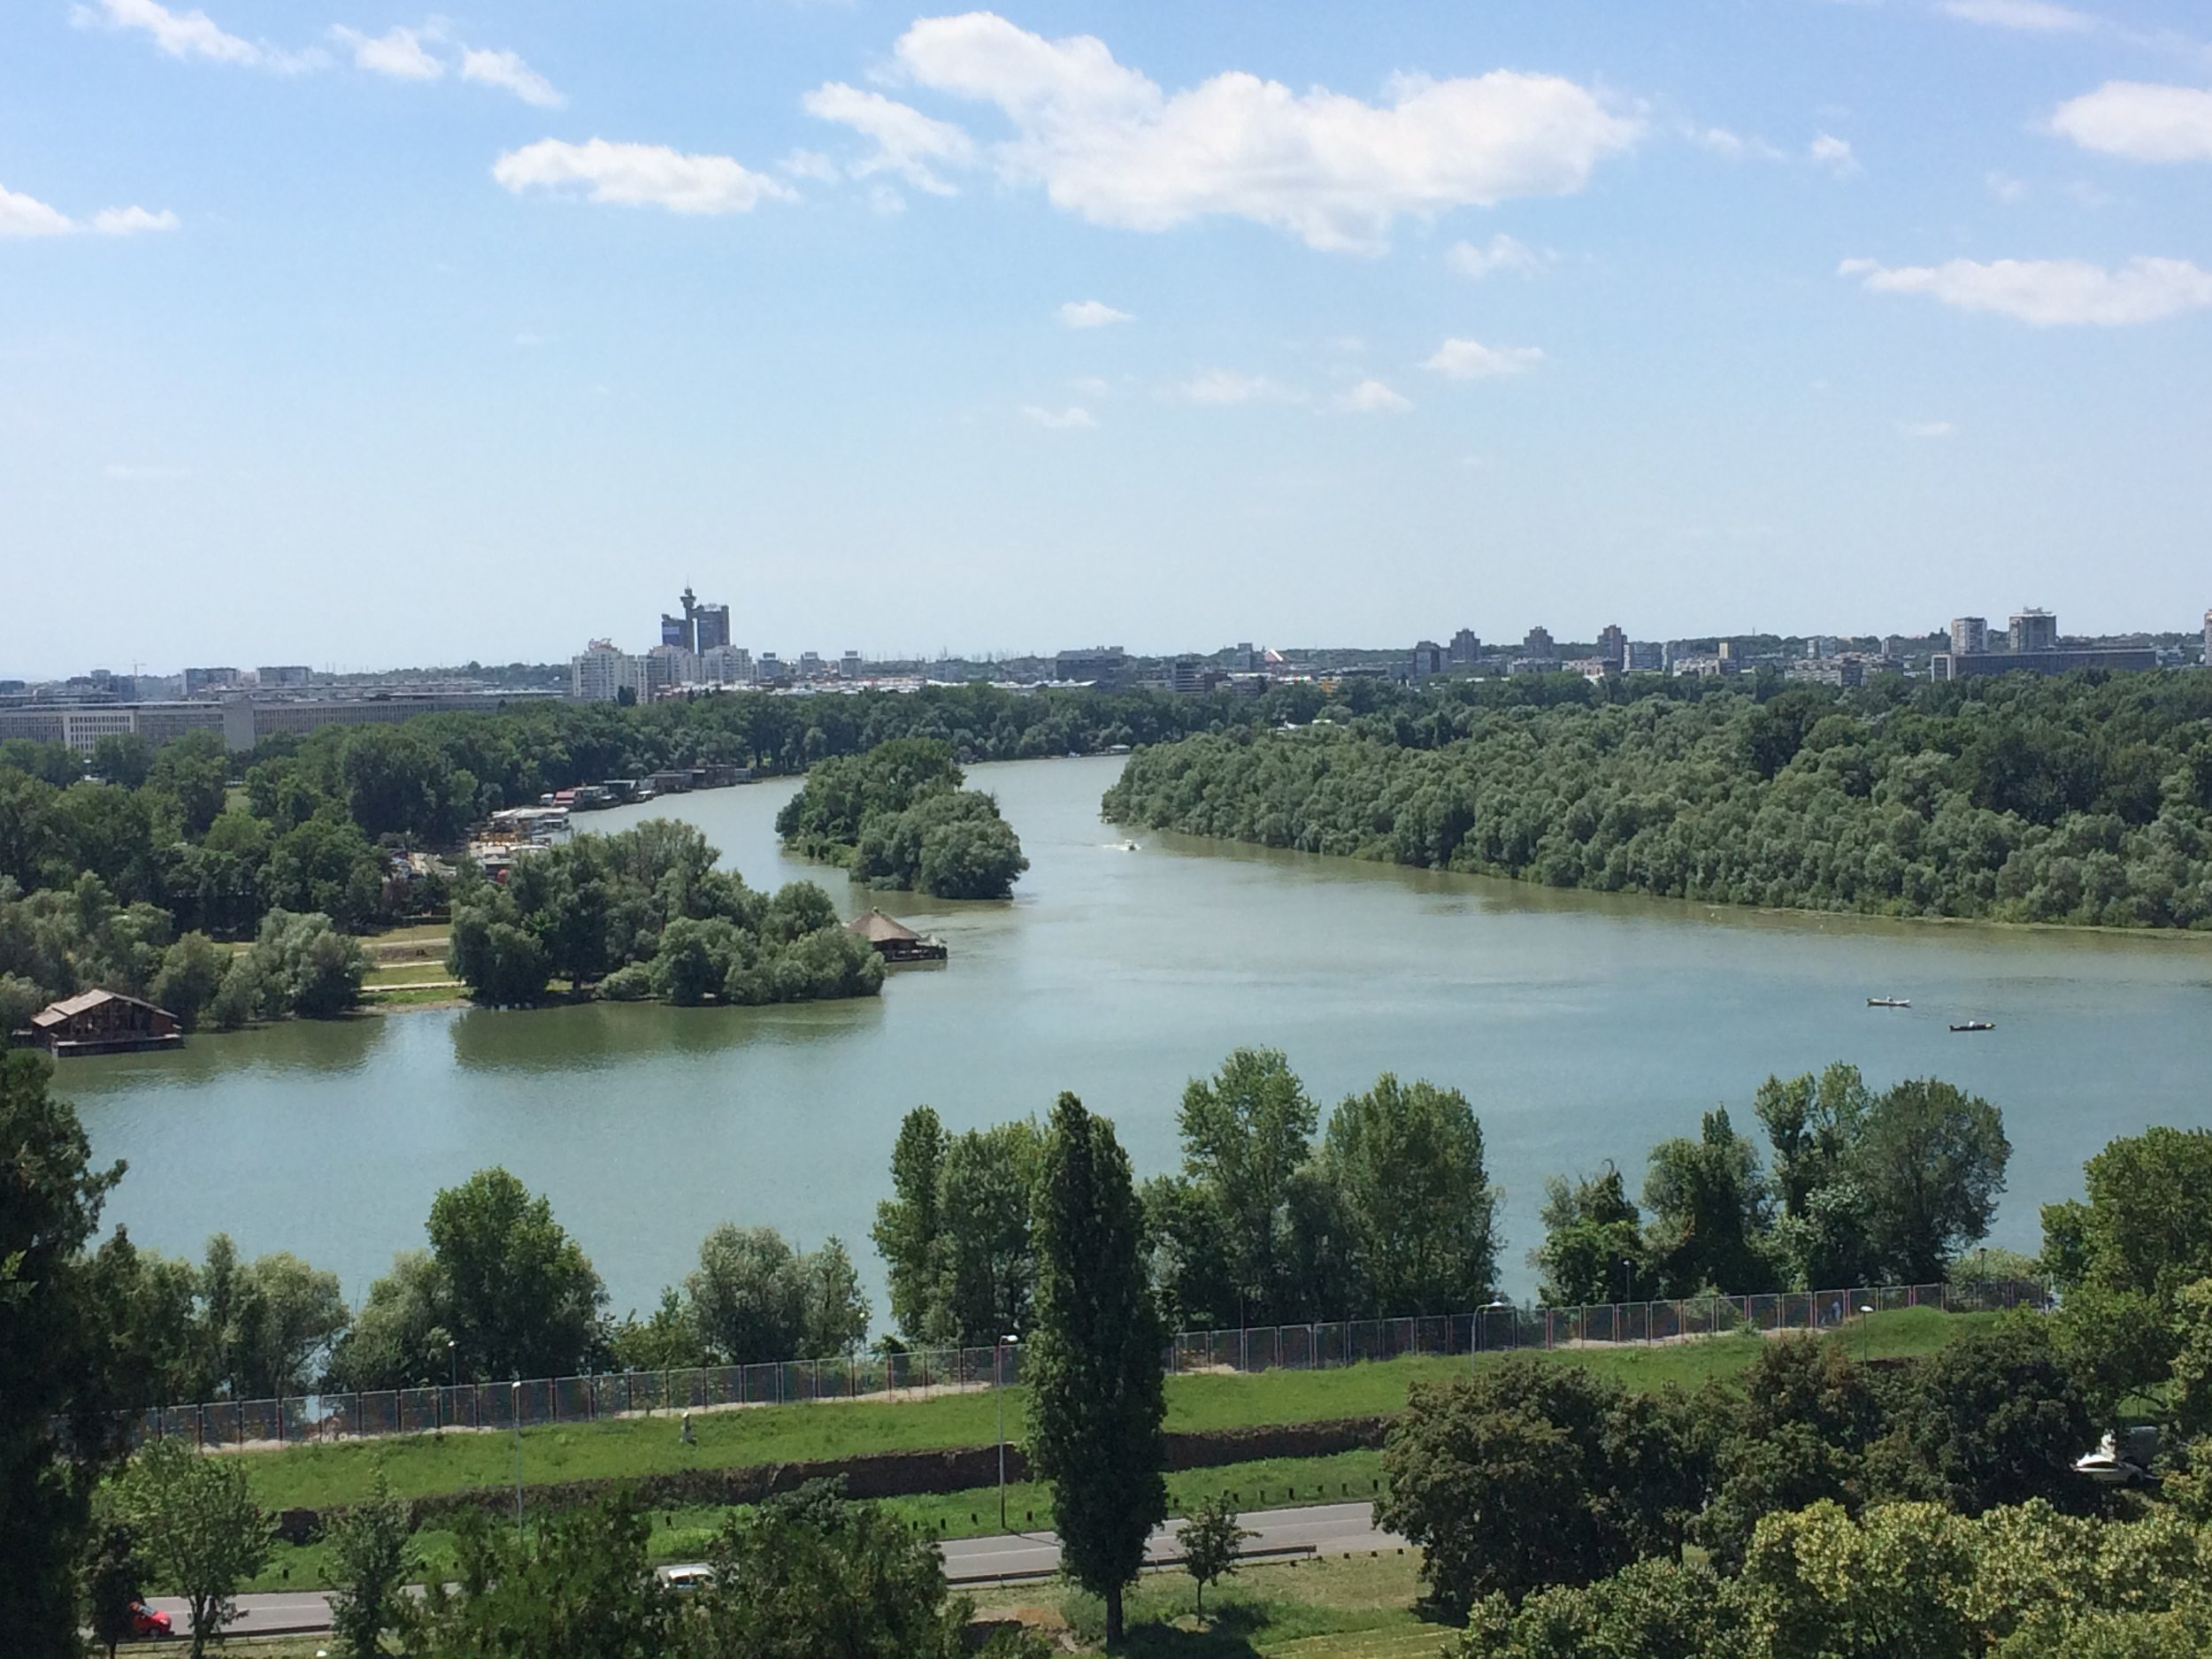 The confluence of the rivers Sava and Danube.